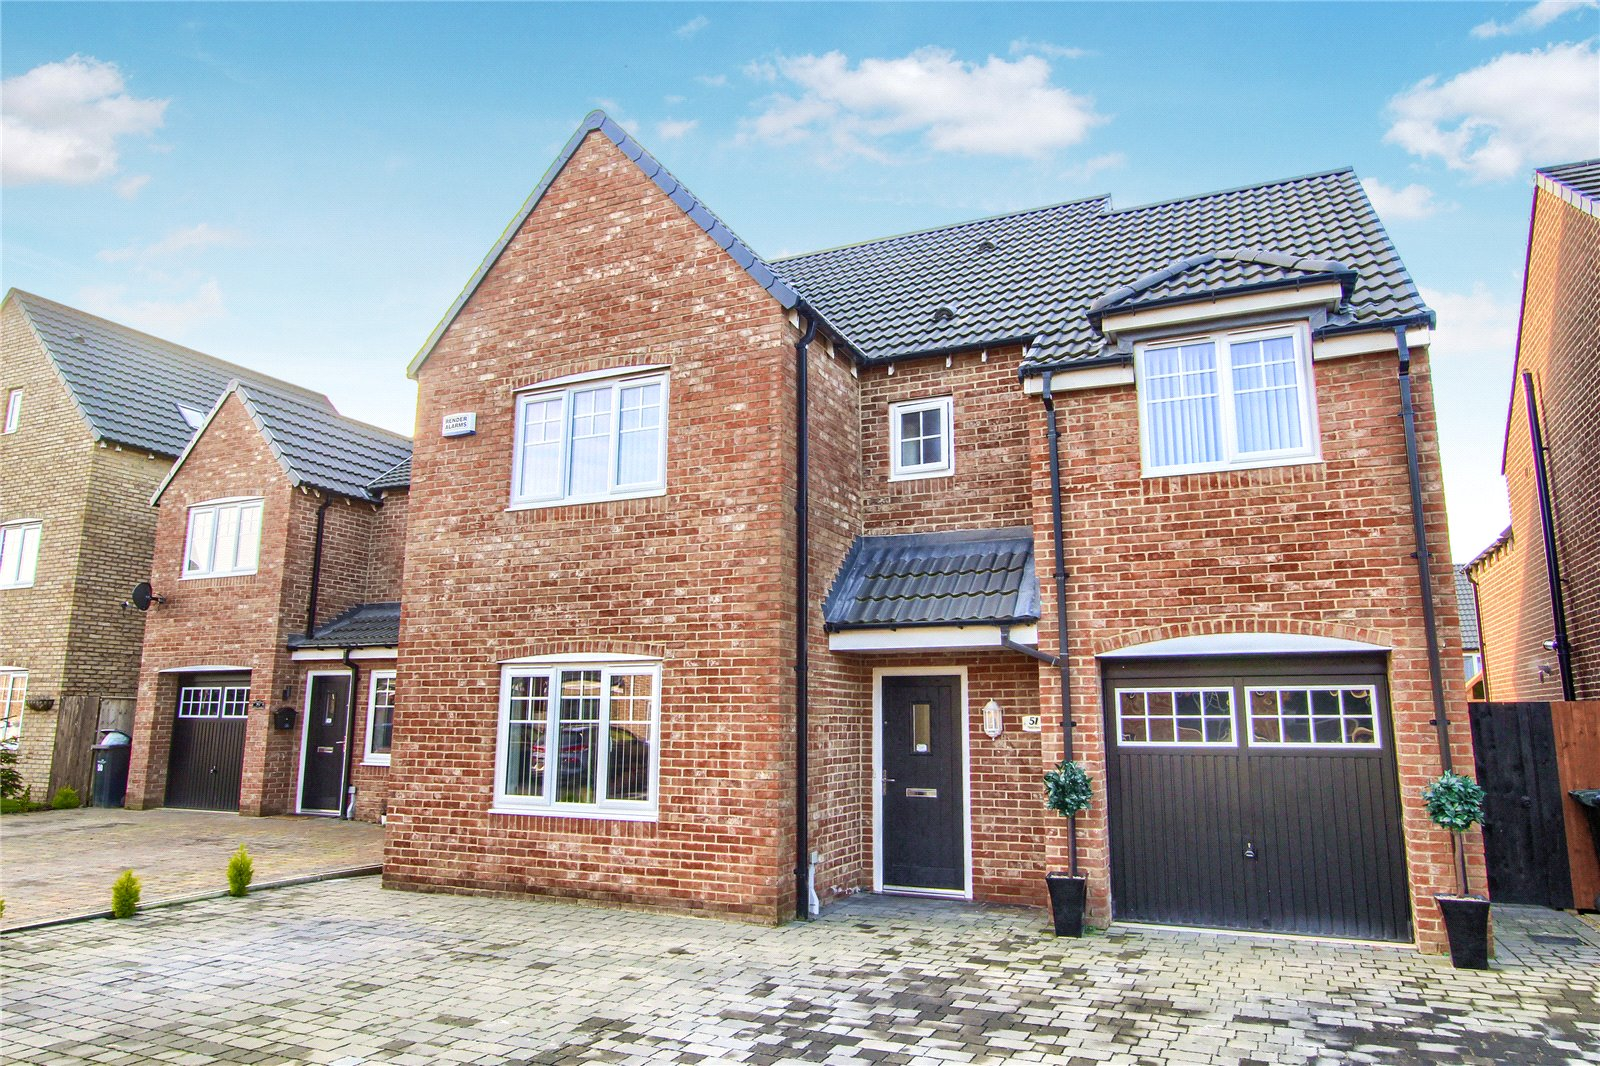 4 bed house for sale in Holt Close, Stainsby Hall Farm  - Property Image 1